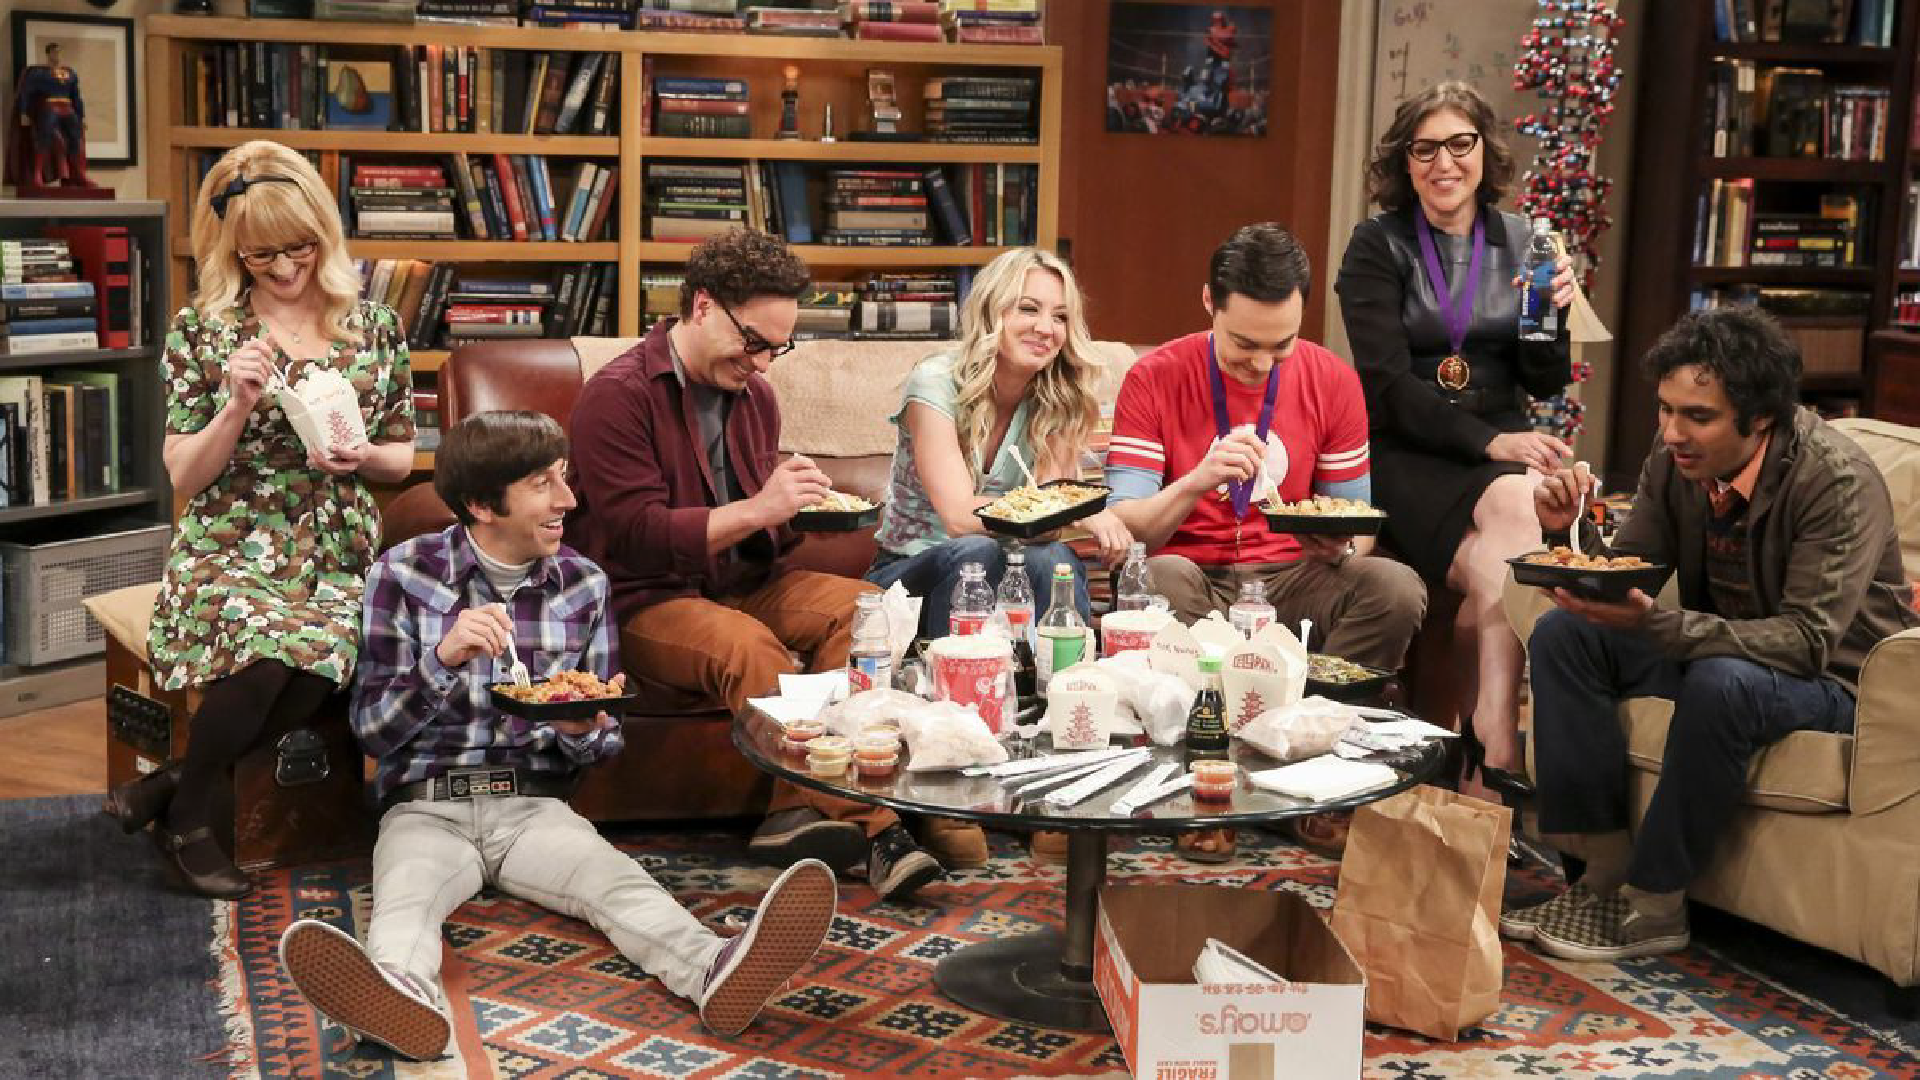 The big bang theory - il cast